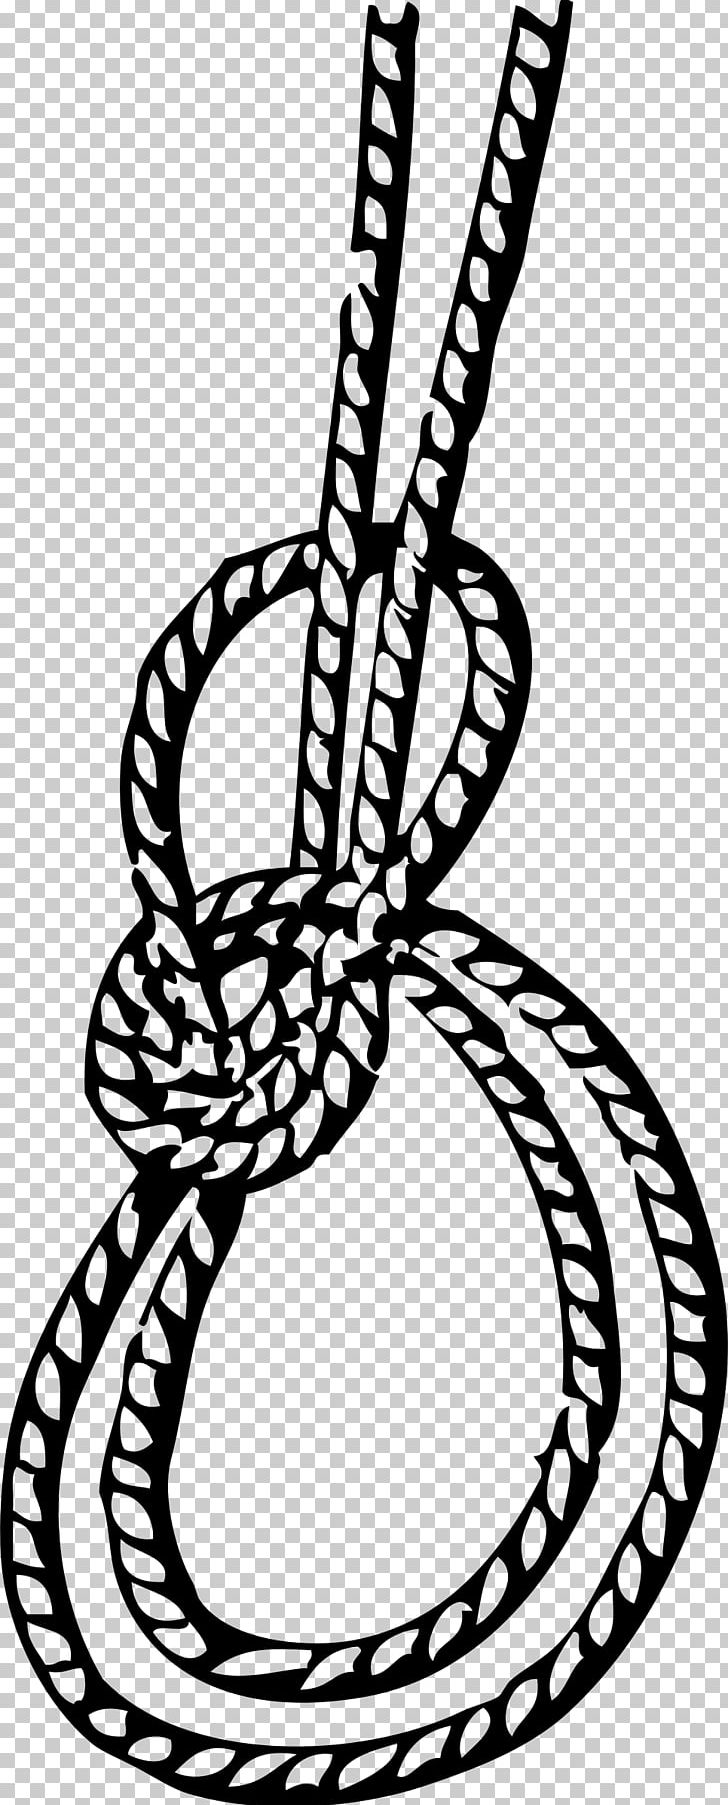 Bow line clipart banner black and white library Bowline On A Bight Knot Running Bowline PNG, Clipart, Bight, Black ... banner black and white library